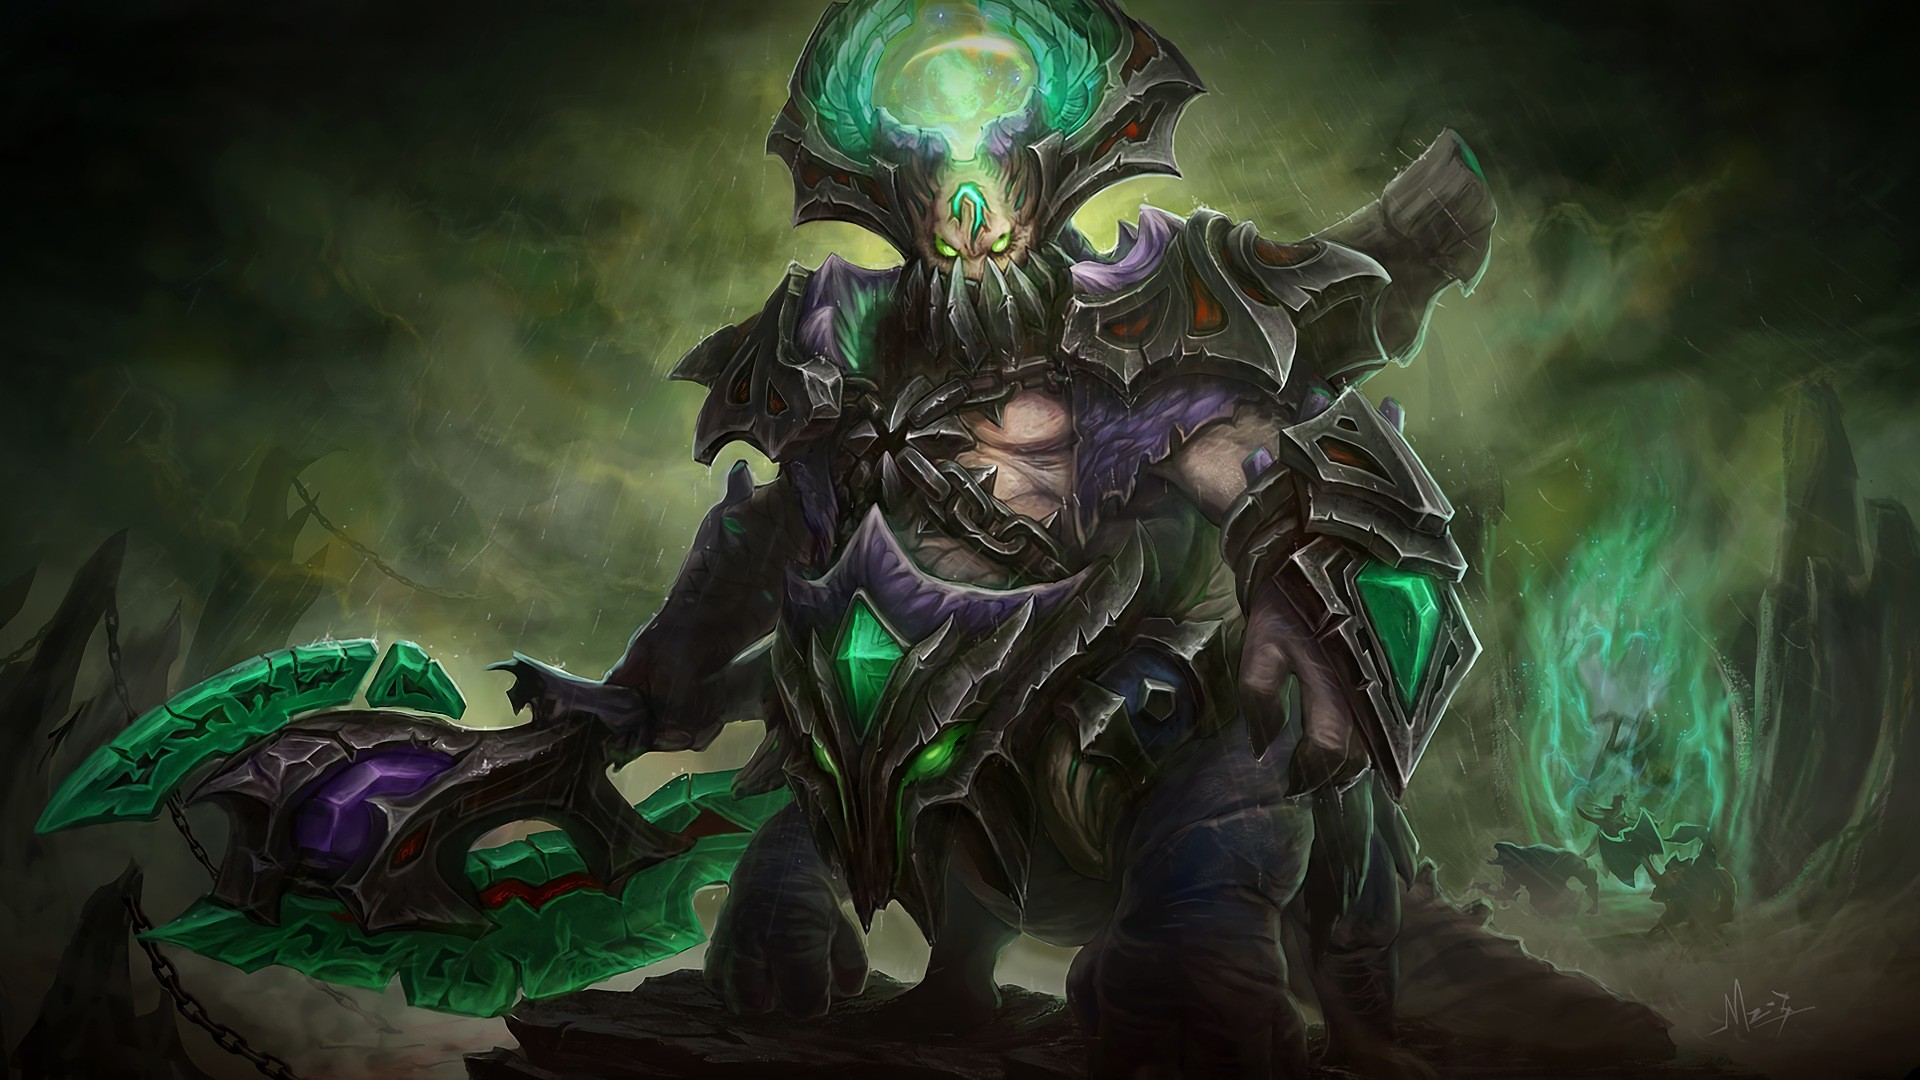 Monkey King Wallpaper (76+ images) Dota 2 Abyssal Underlord